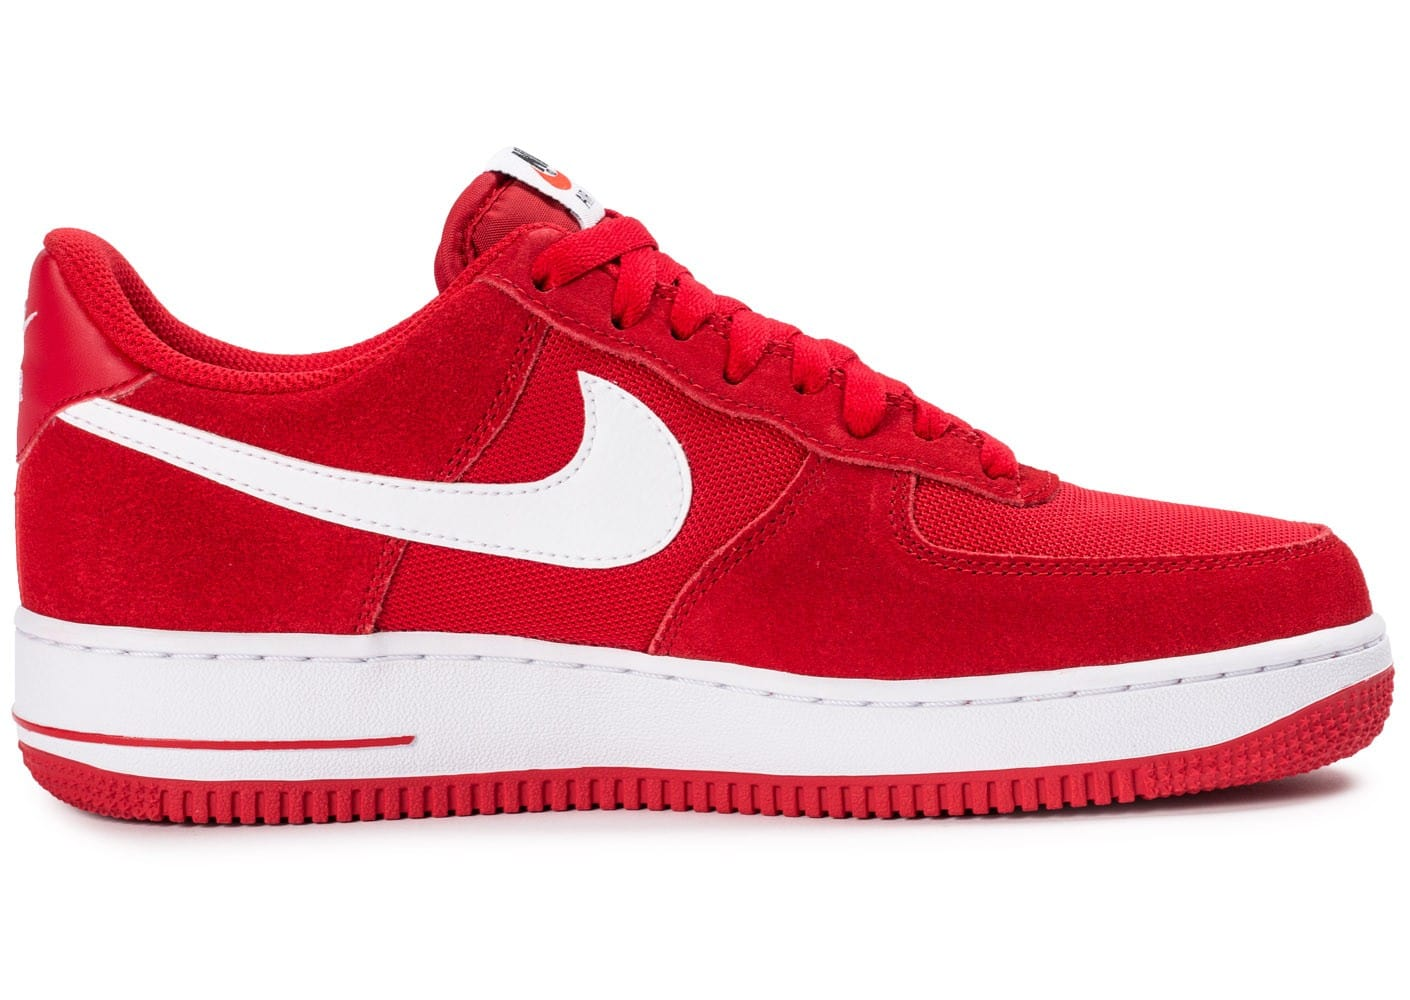 air force 1 suede rouge,air force 1 cette p